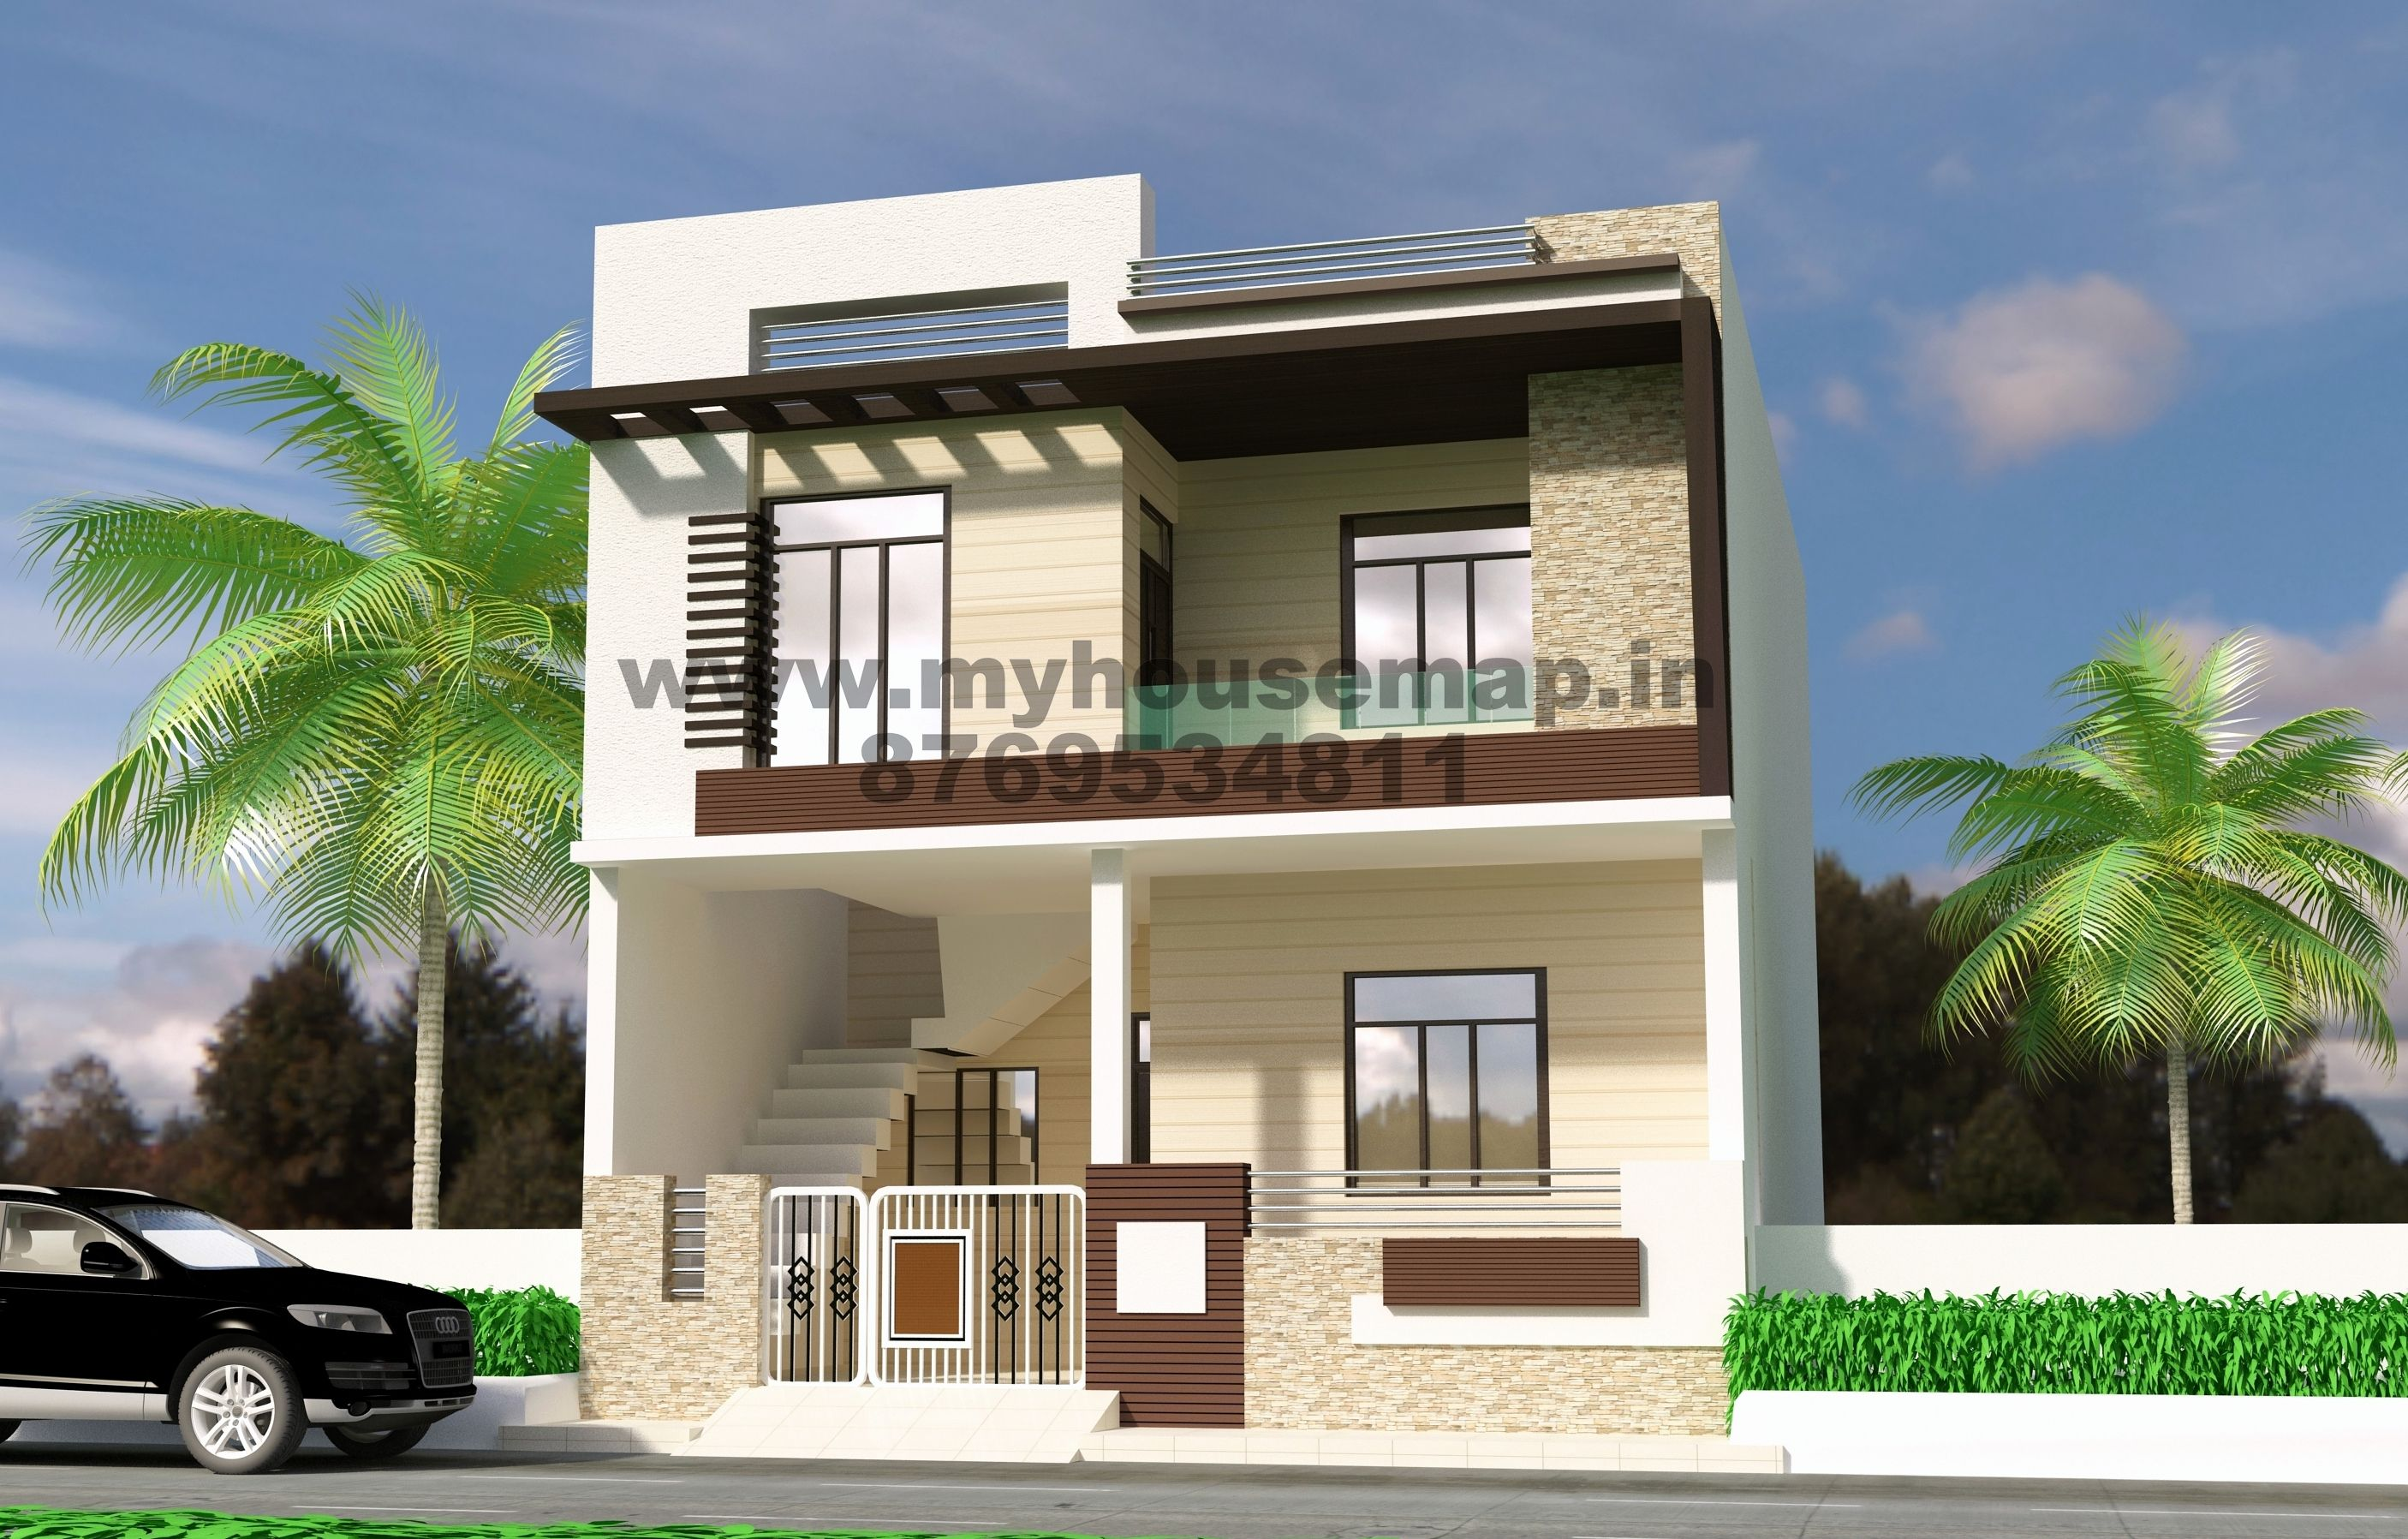 Simple House Plans Front View Fresh Front Elevation Design Modern